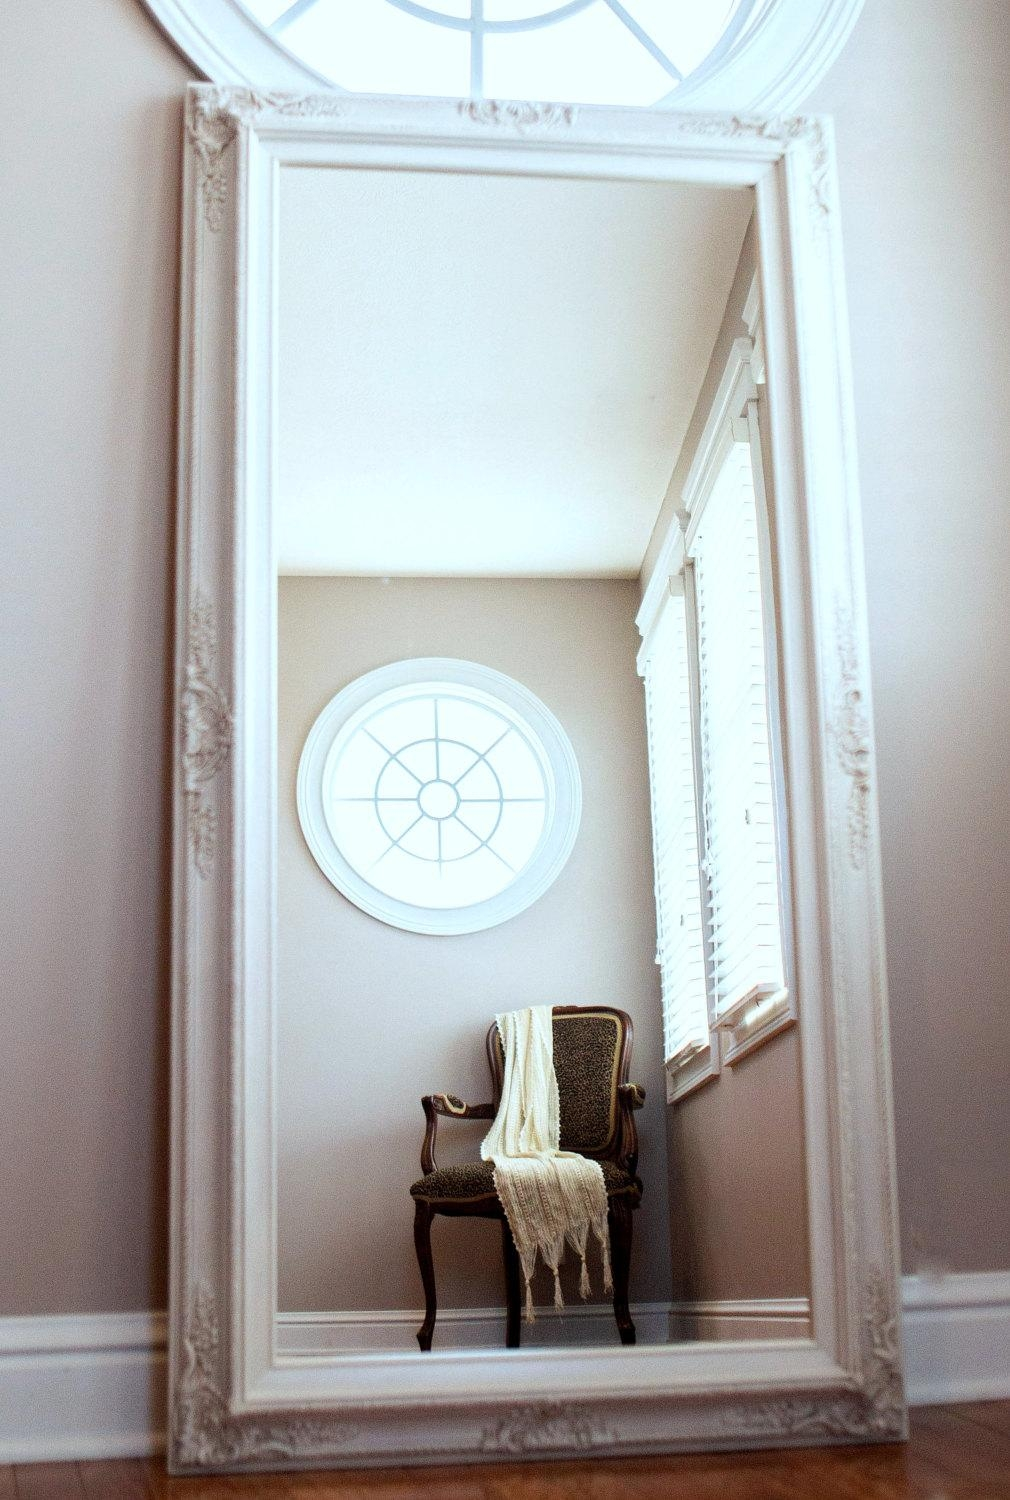 Flooring : Literarywondrous White Floorrror Image Inspirations With Regard To Distressed Framed Mirror (Image 11 of 20)